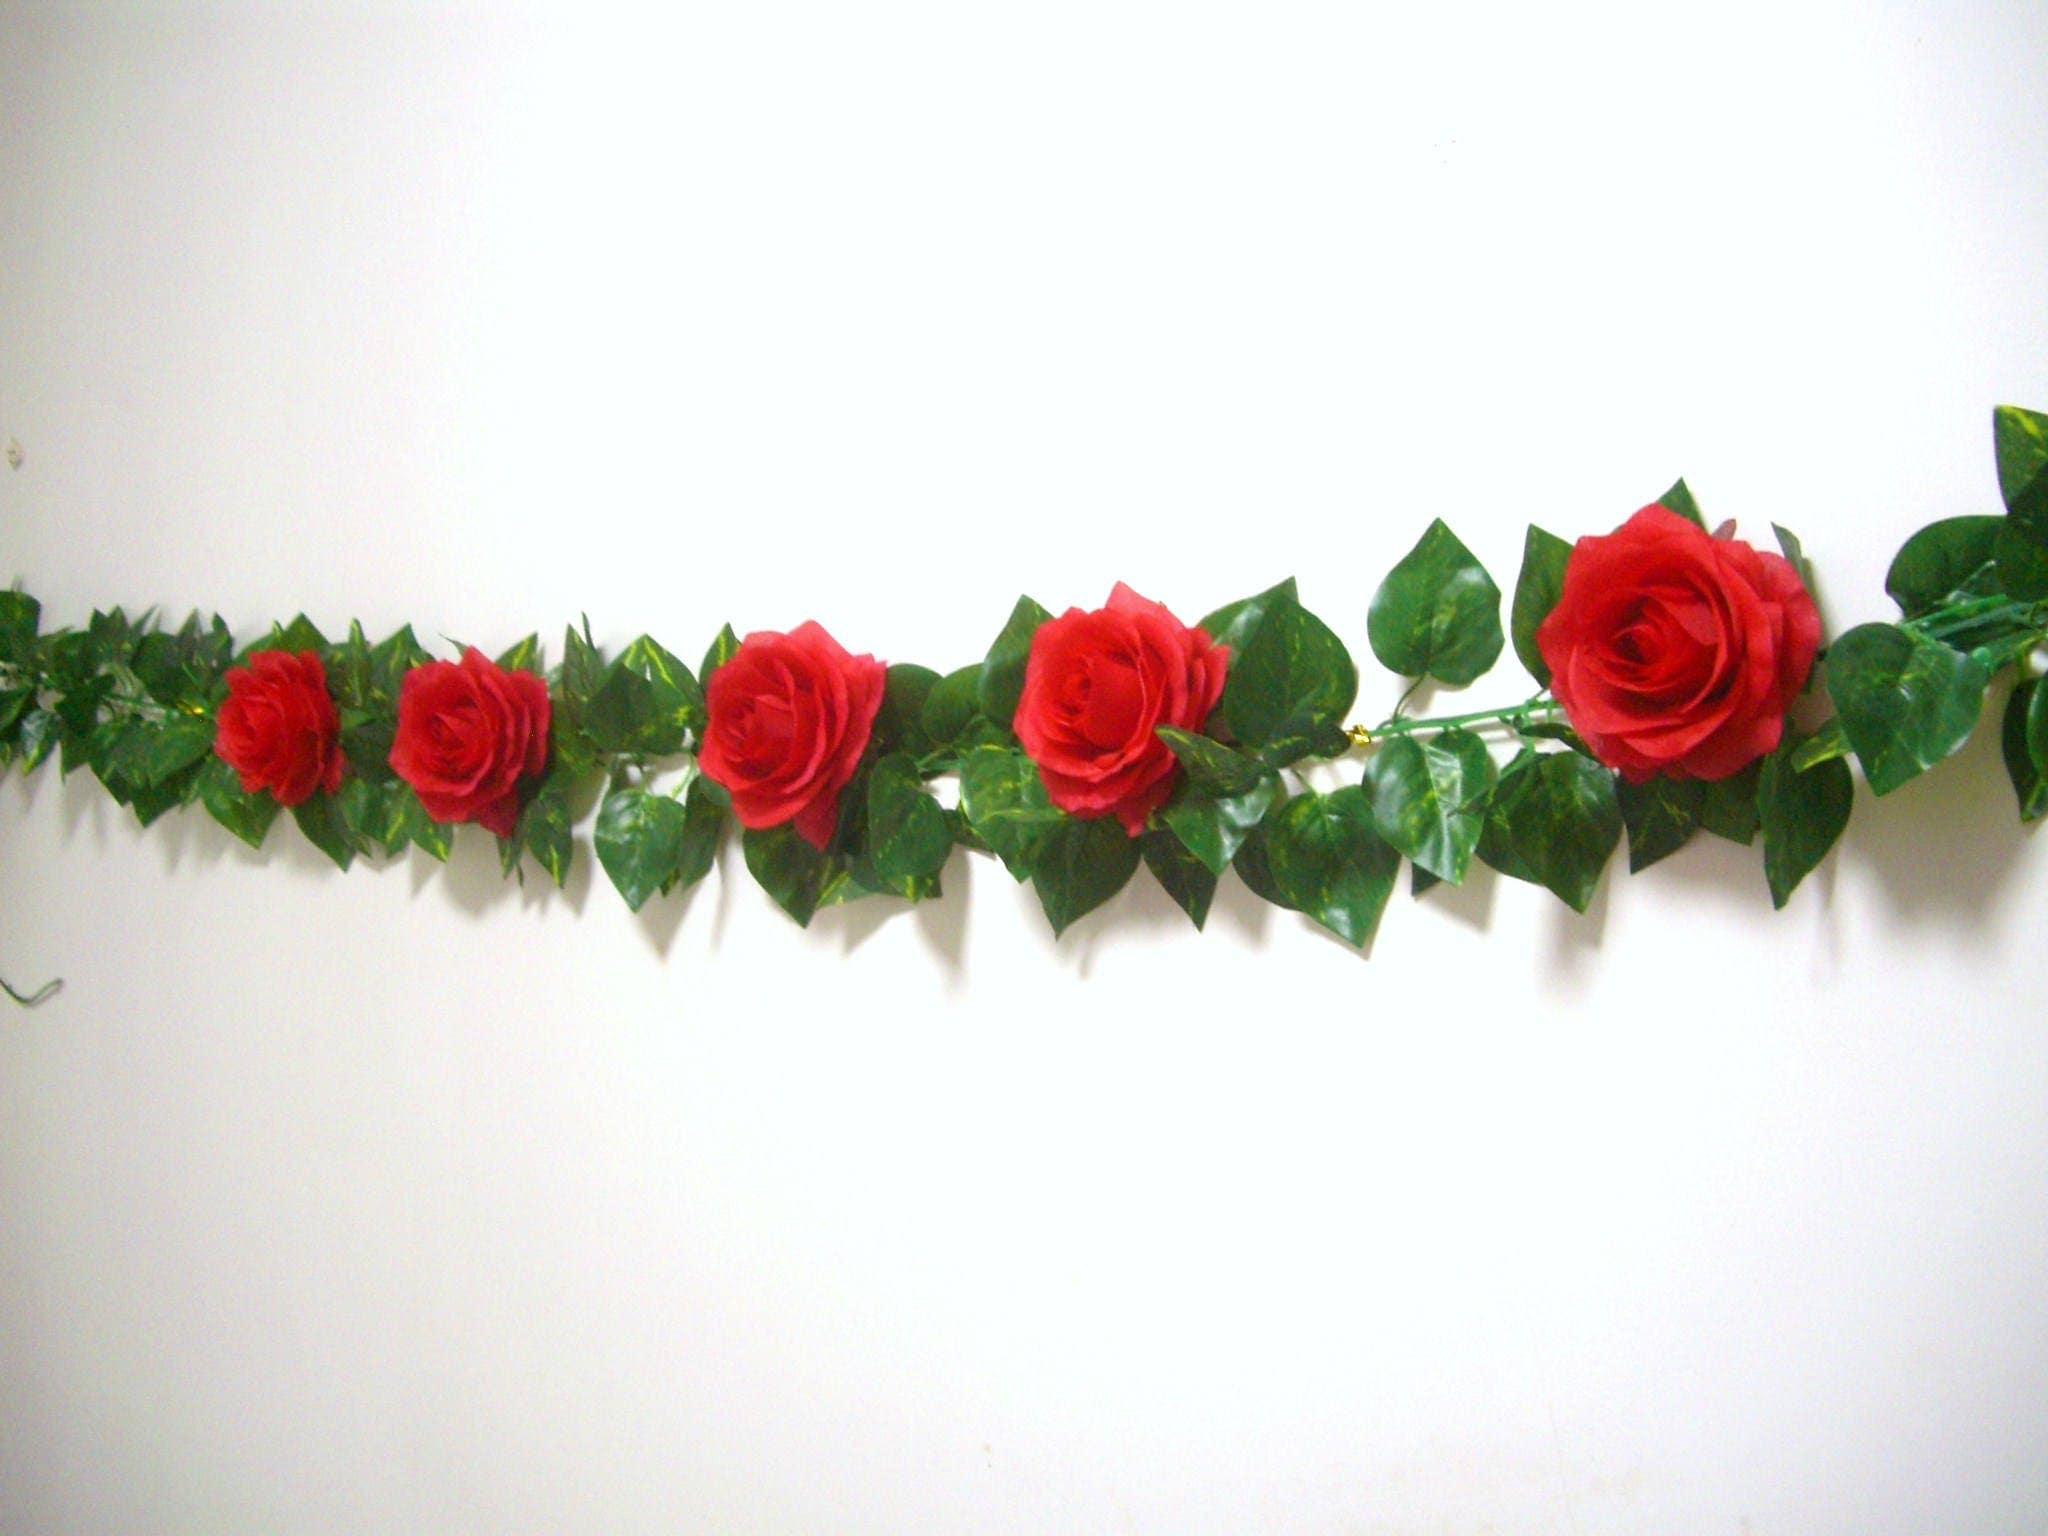 Wedding garlandred silk flower garlandred white rose garland wedding garlandred silk flower garlandred white rose garlandwedding arch garland mightylinksfo Choice Image